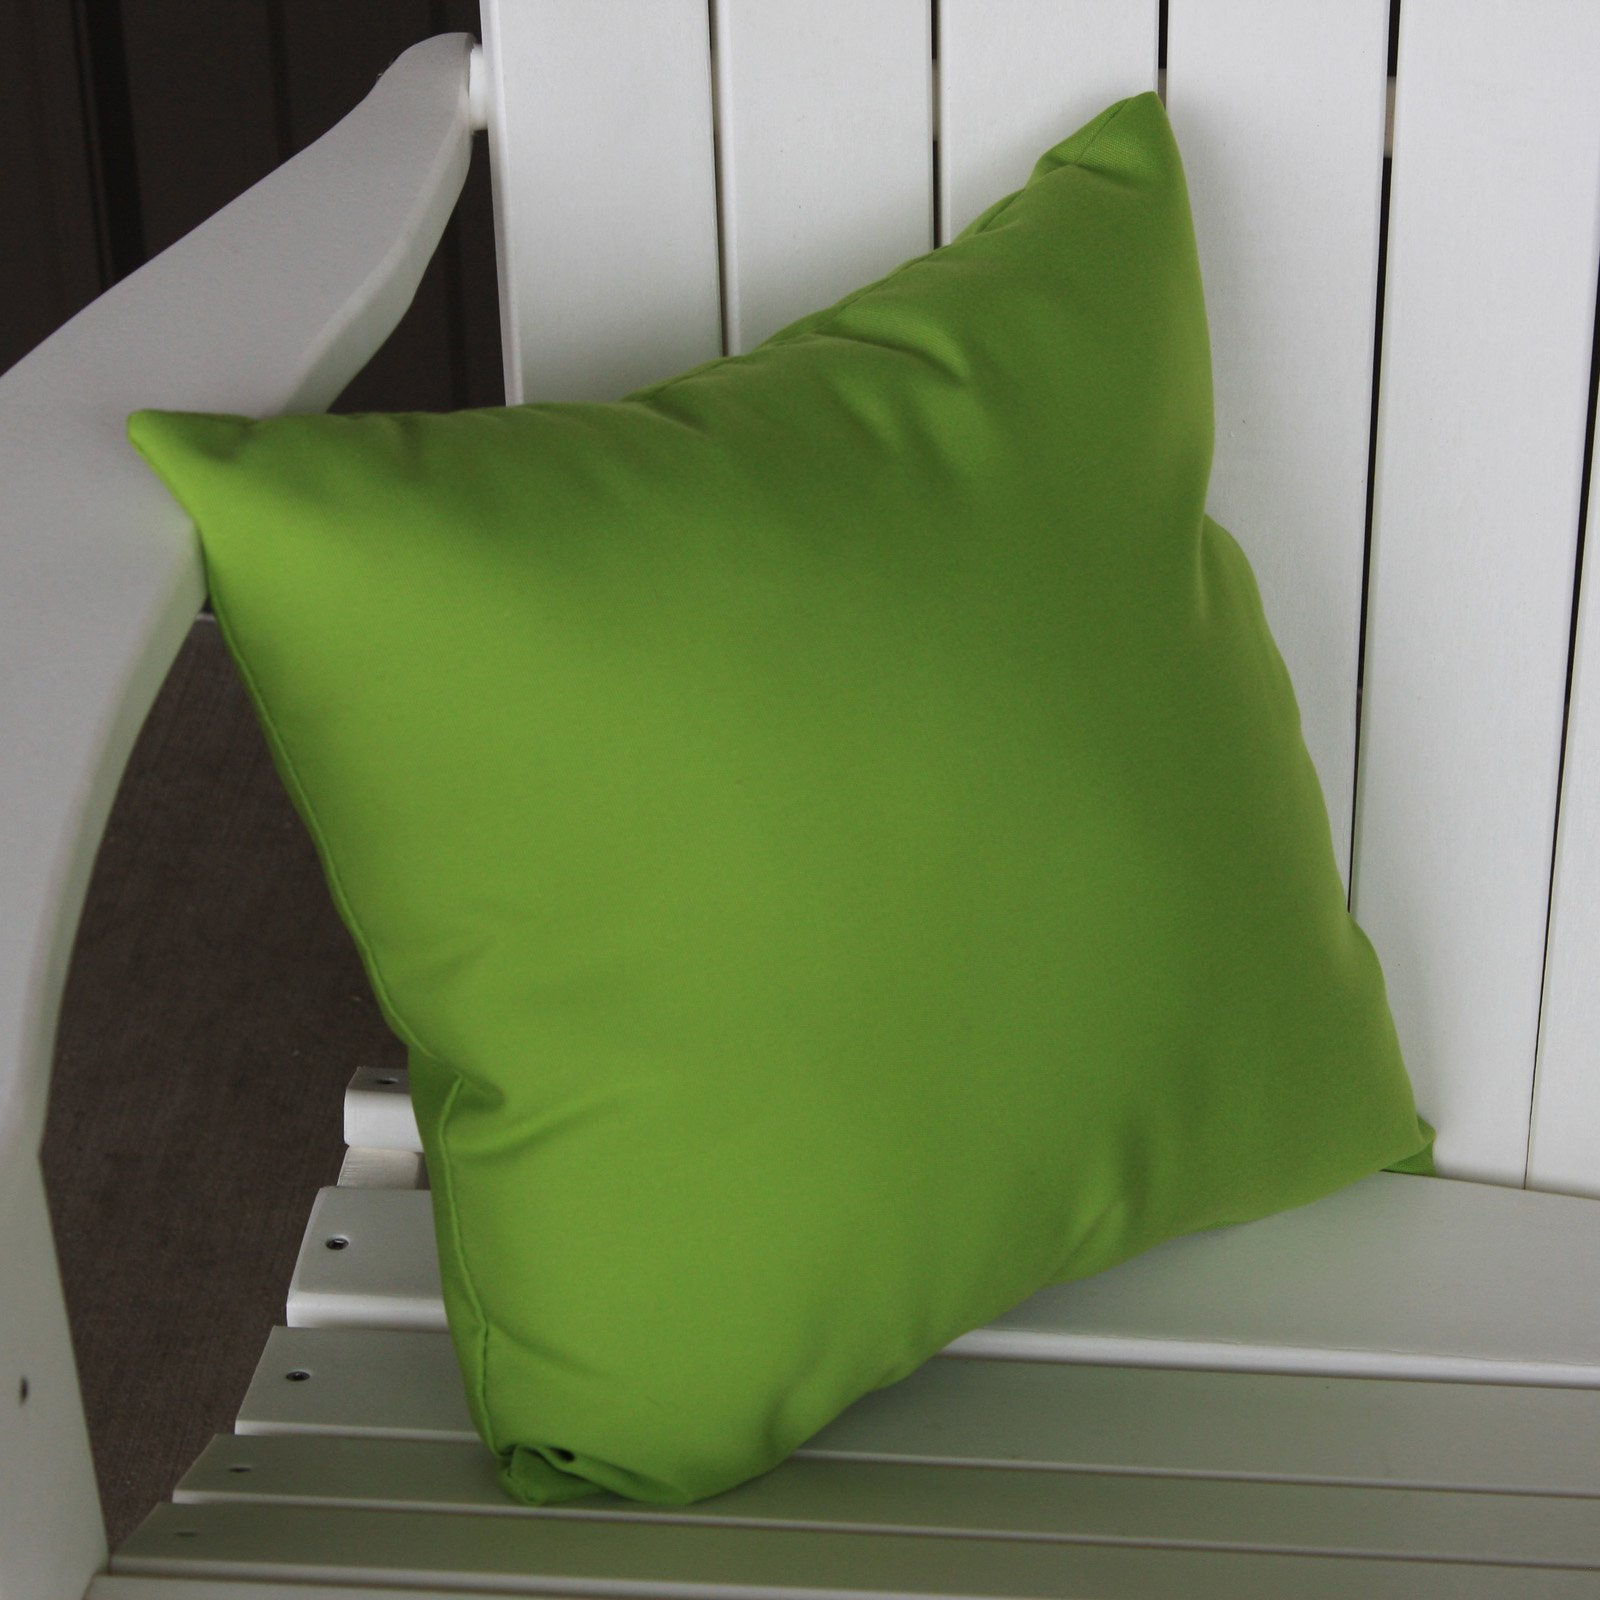 A & L Furniture Sundown Agora 15x15 in. Square Outdoor Pillow